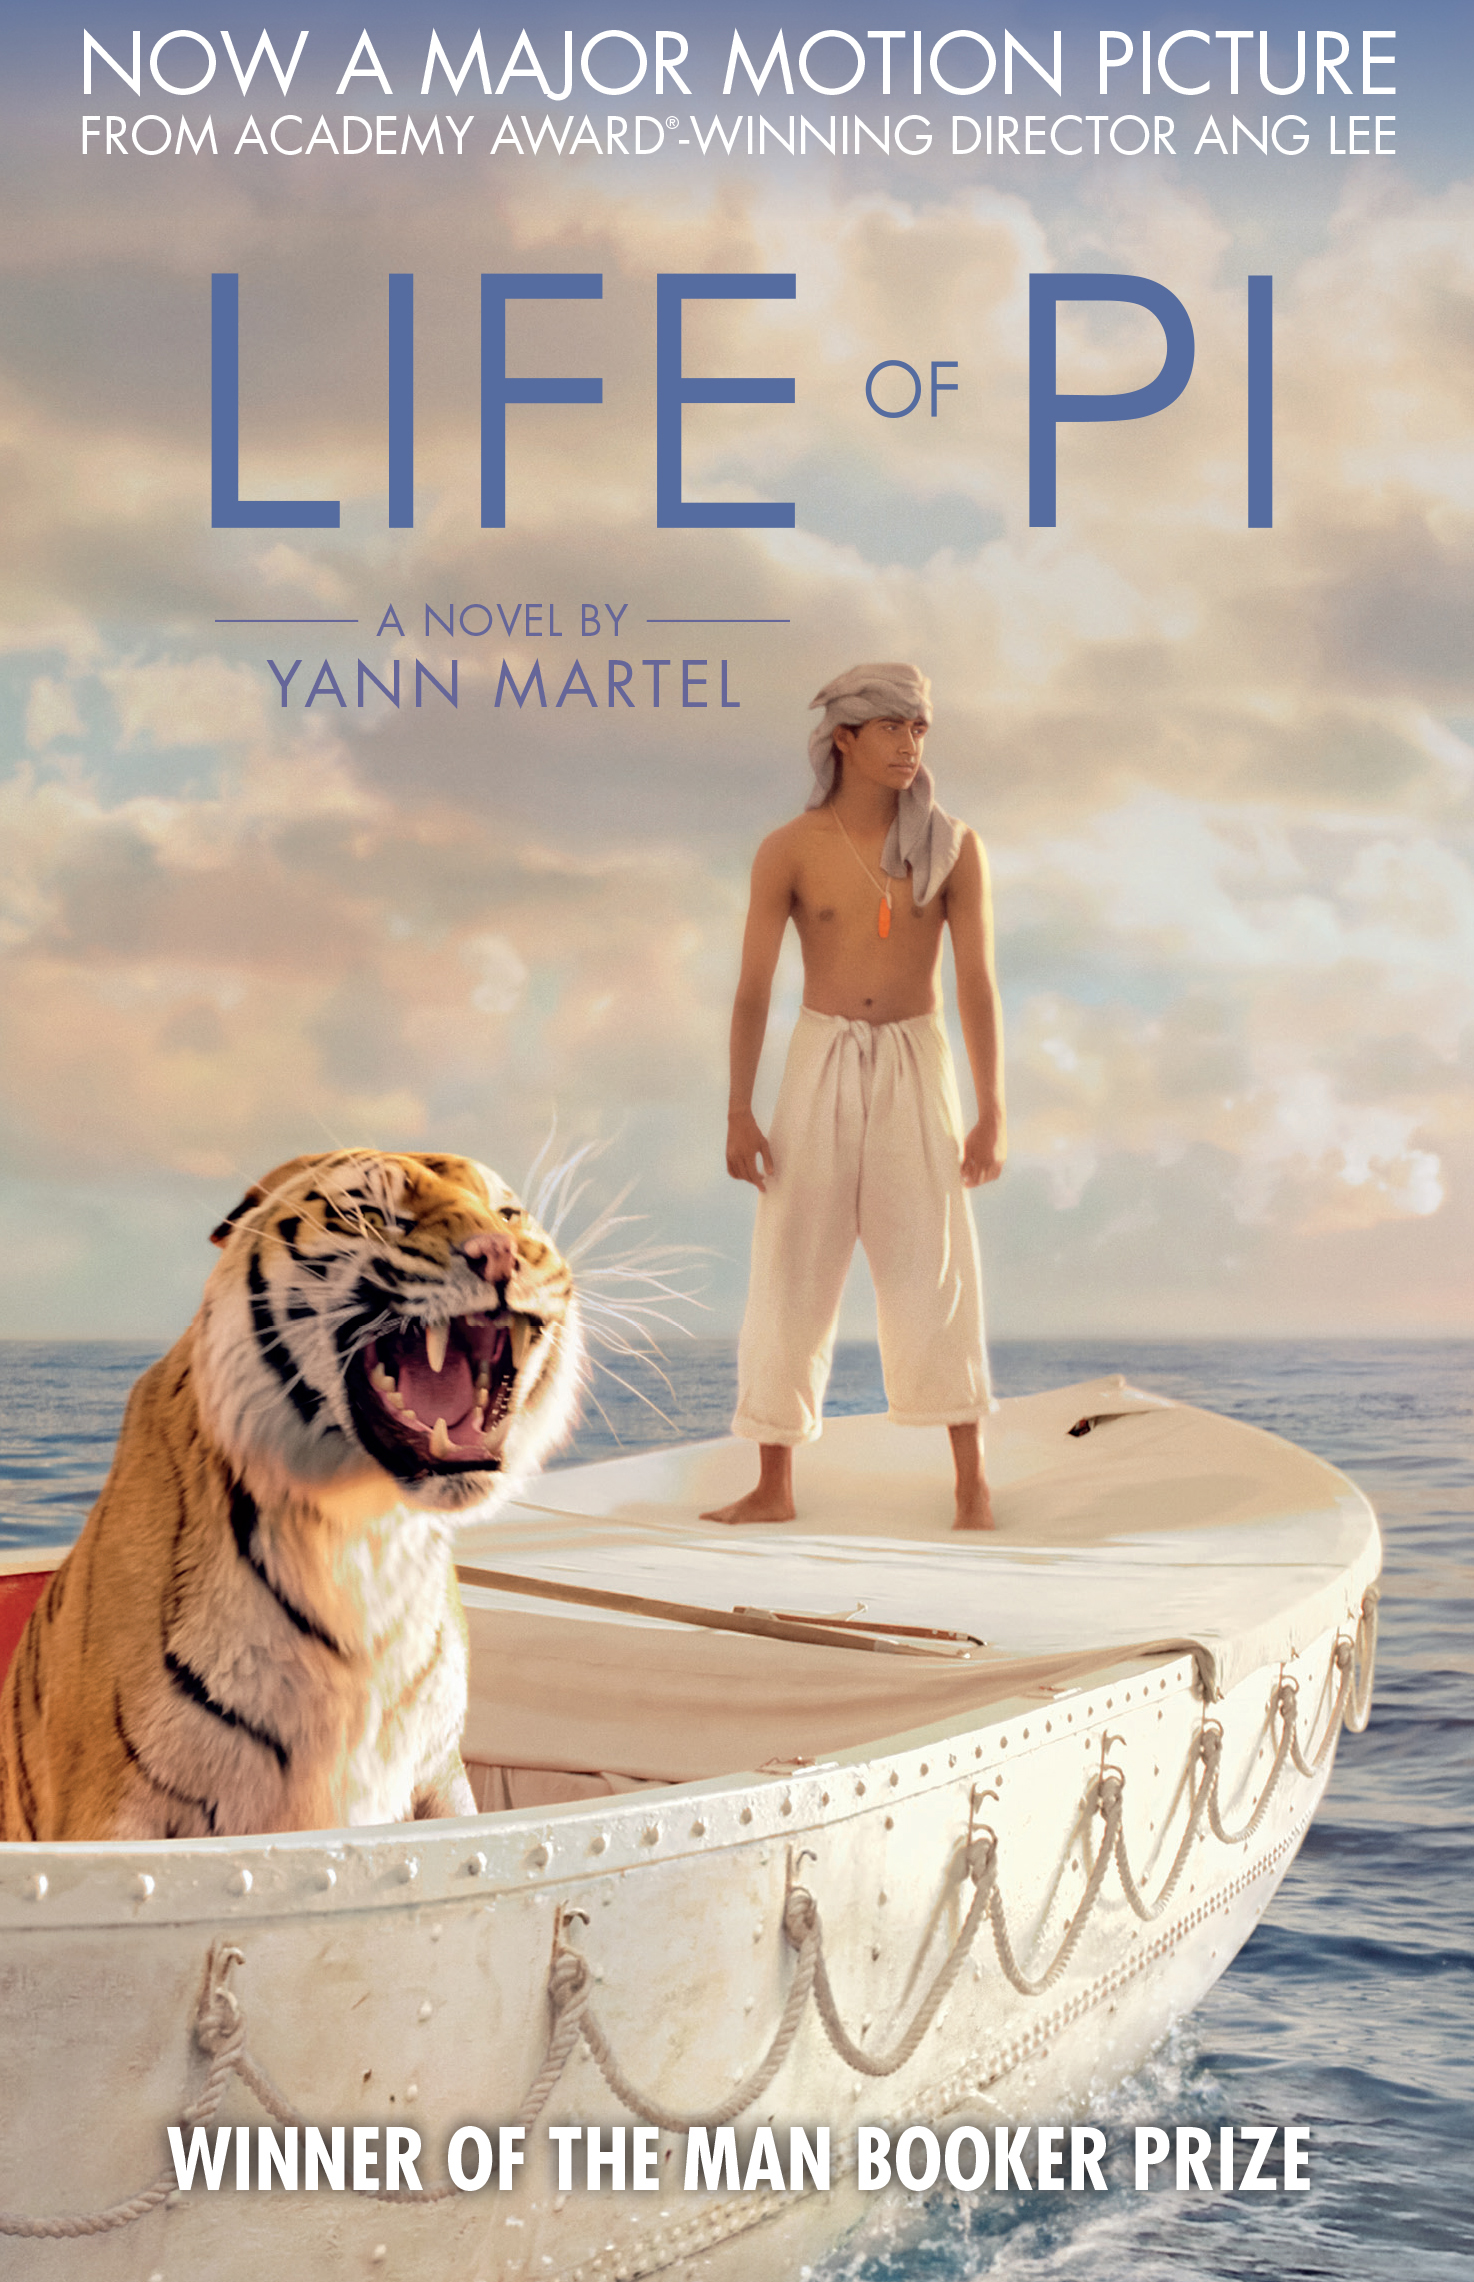 Life of pi film tie in yann martel 9780857865533 for Life of pi cast